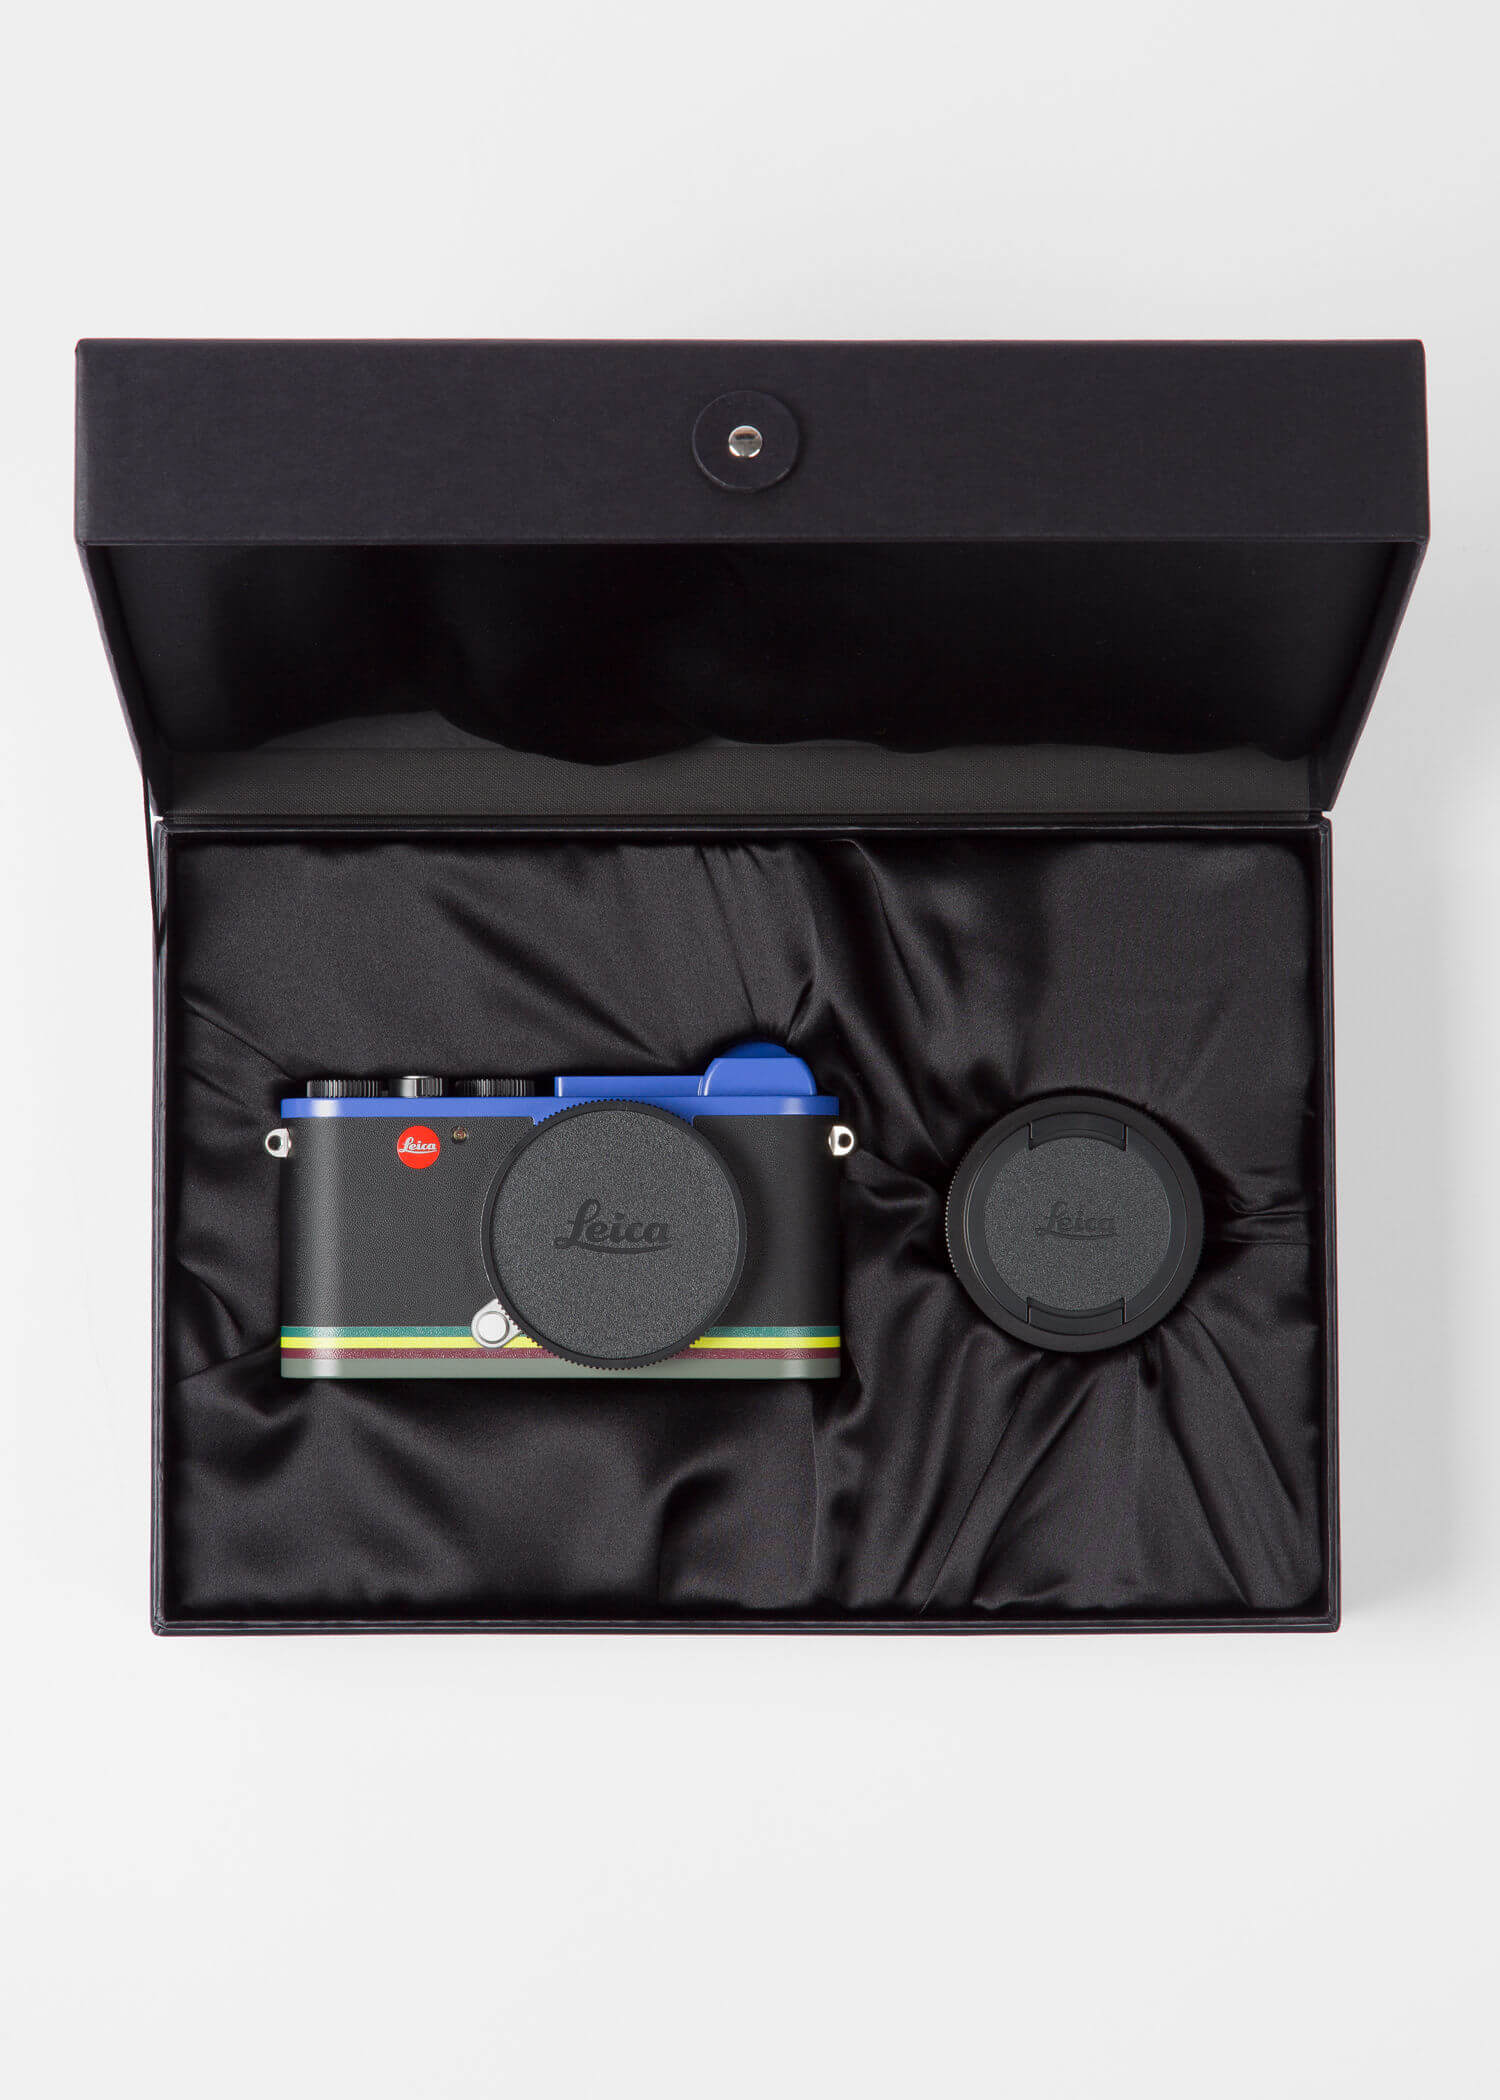 Leica CL Edition Paul Smith Mirrorless Digital Camera with 18mm Lens 7